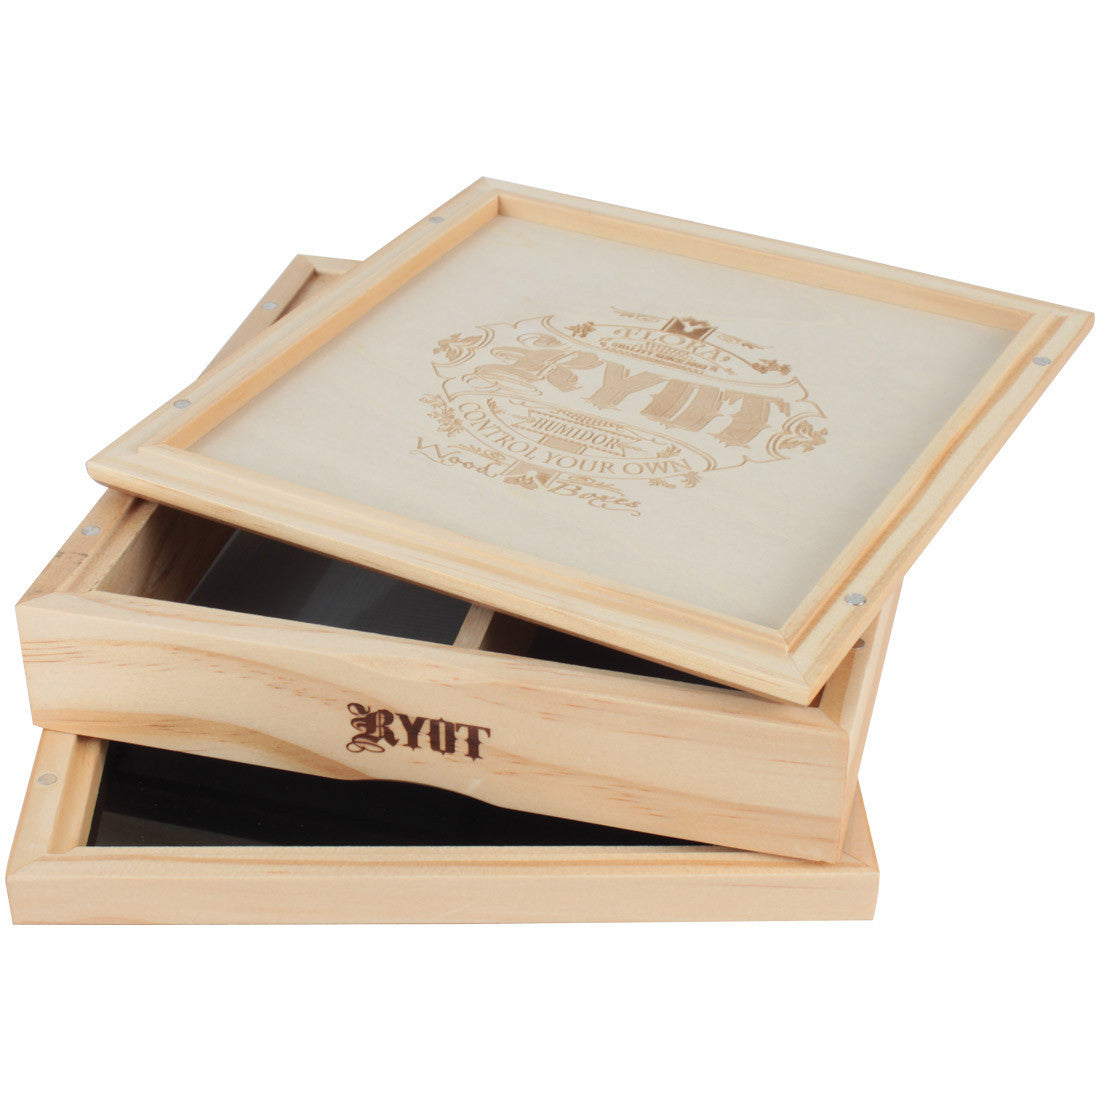 DISCONTINUED RYOT 178mm x 178mm Sifter Box in Natural